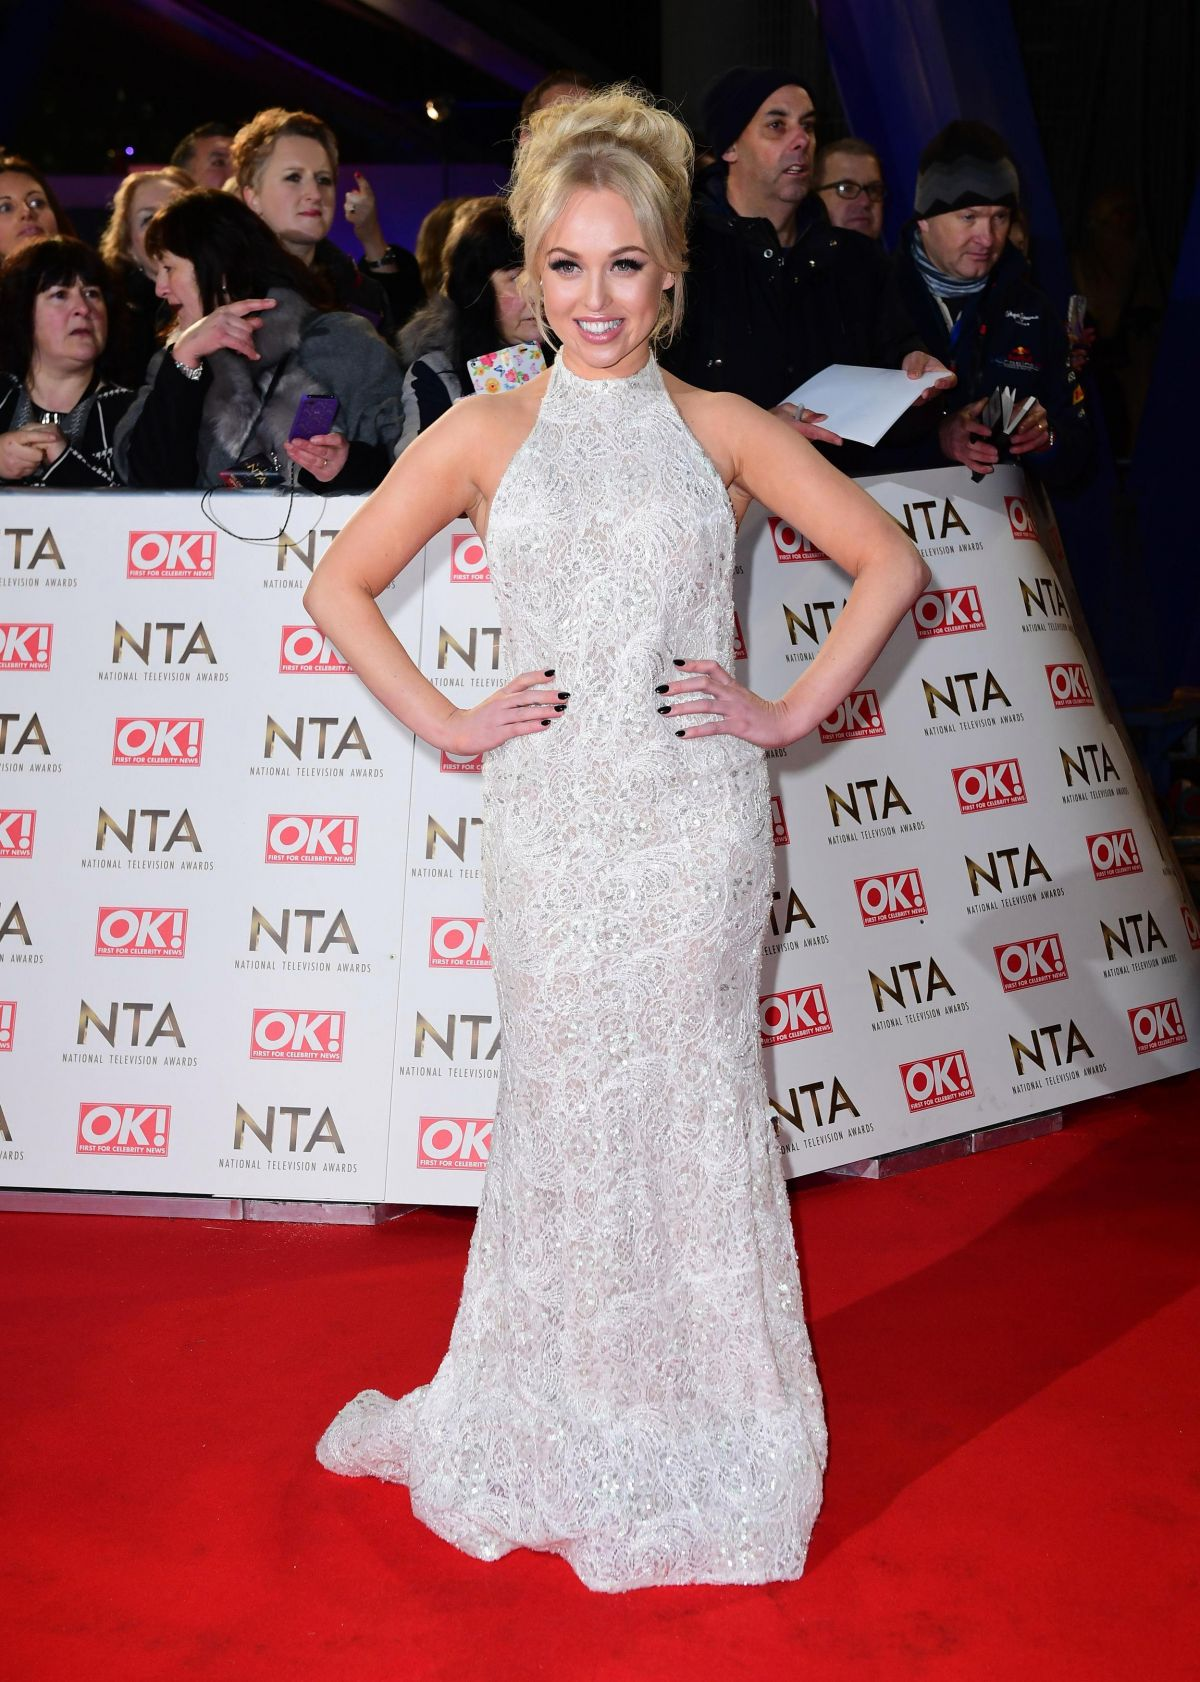 JORGIE PORTER at National Television Awards in London 01/25/2017